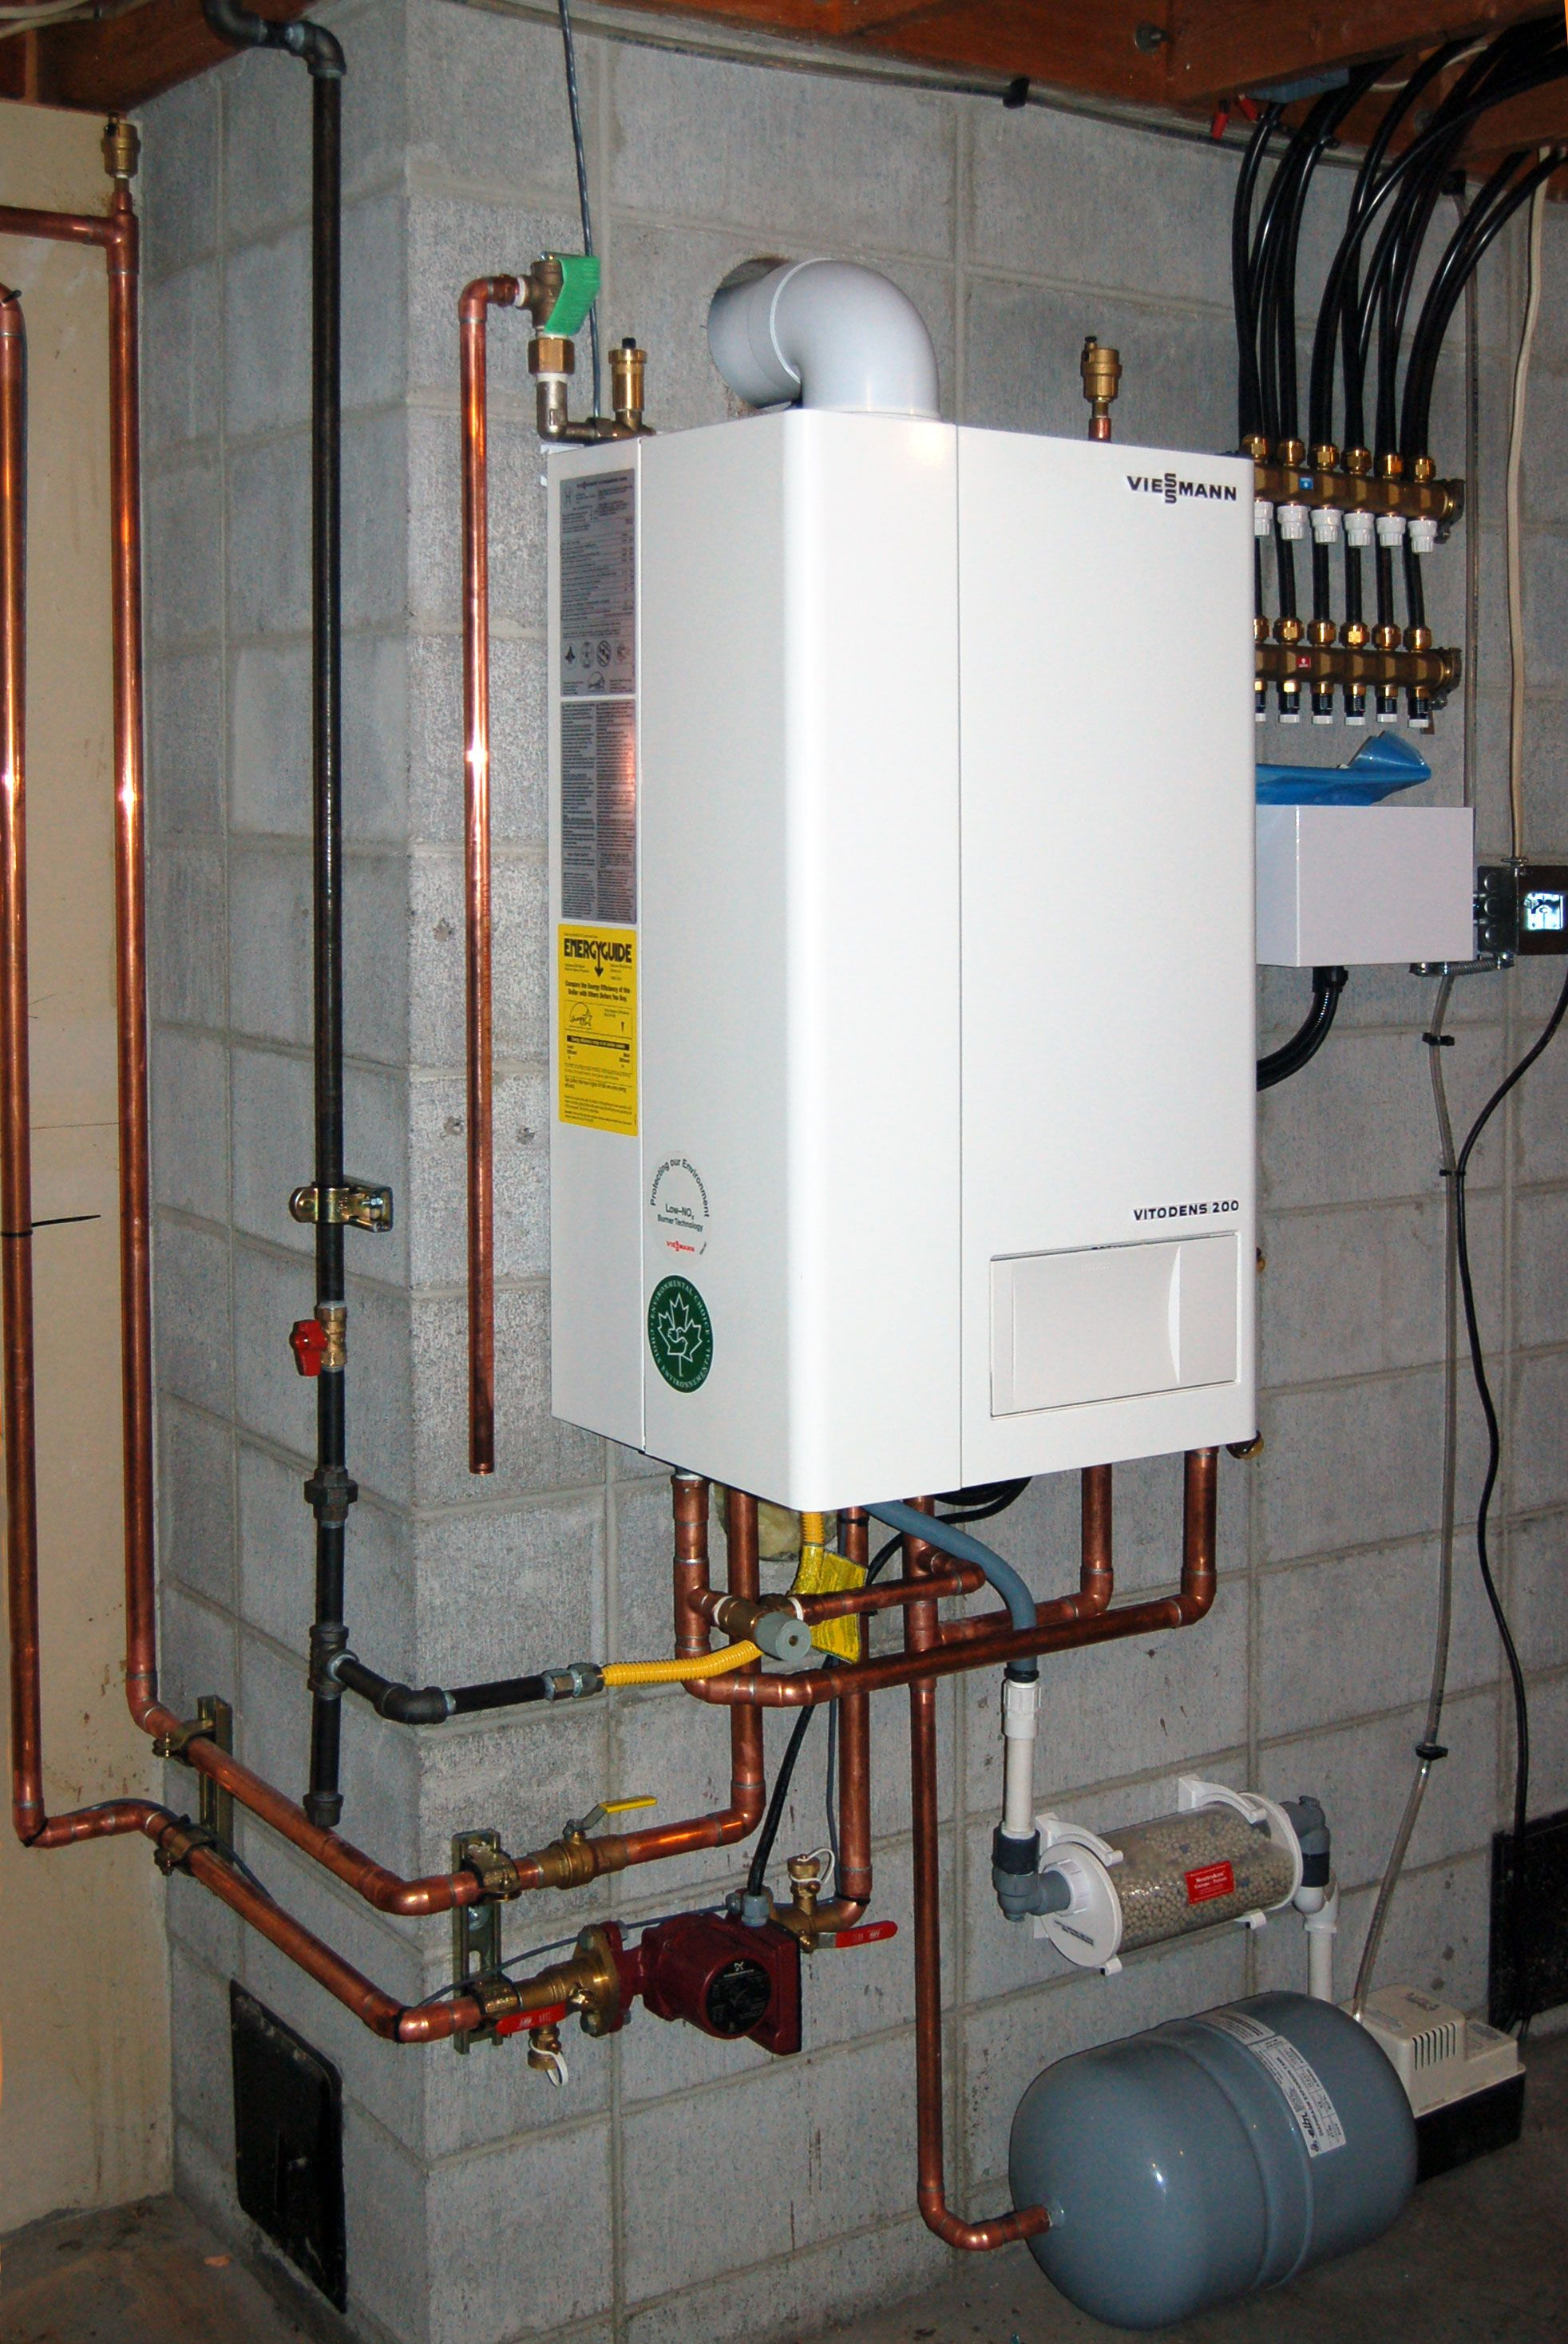 Viessmann Boiler Wiring Diagrams Greddy Emanage Blue Diagram Upgraded To A This Montana Home Owner Is Happy